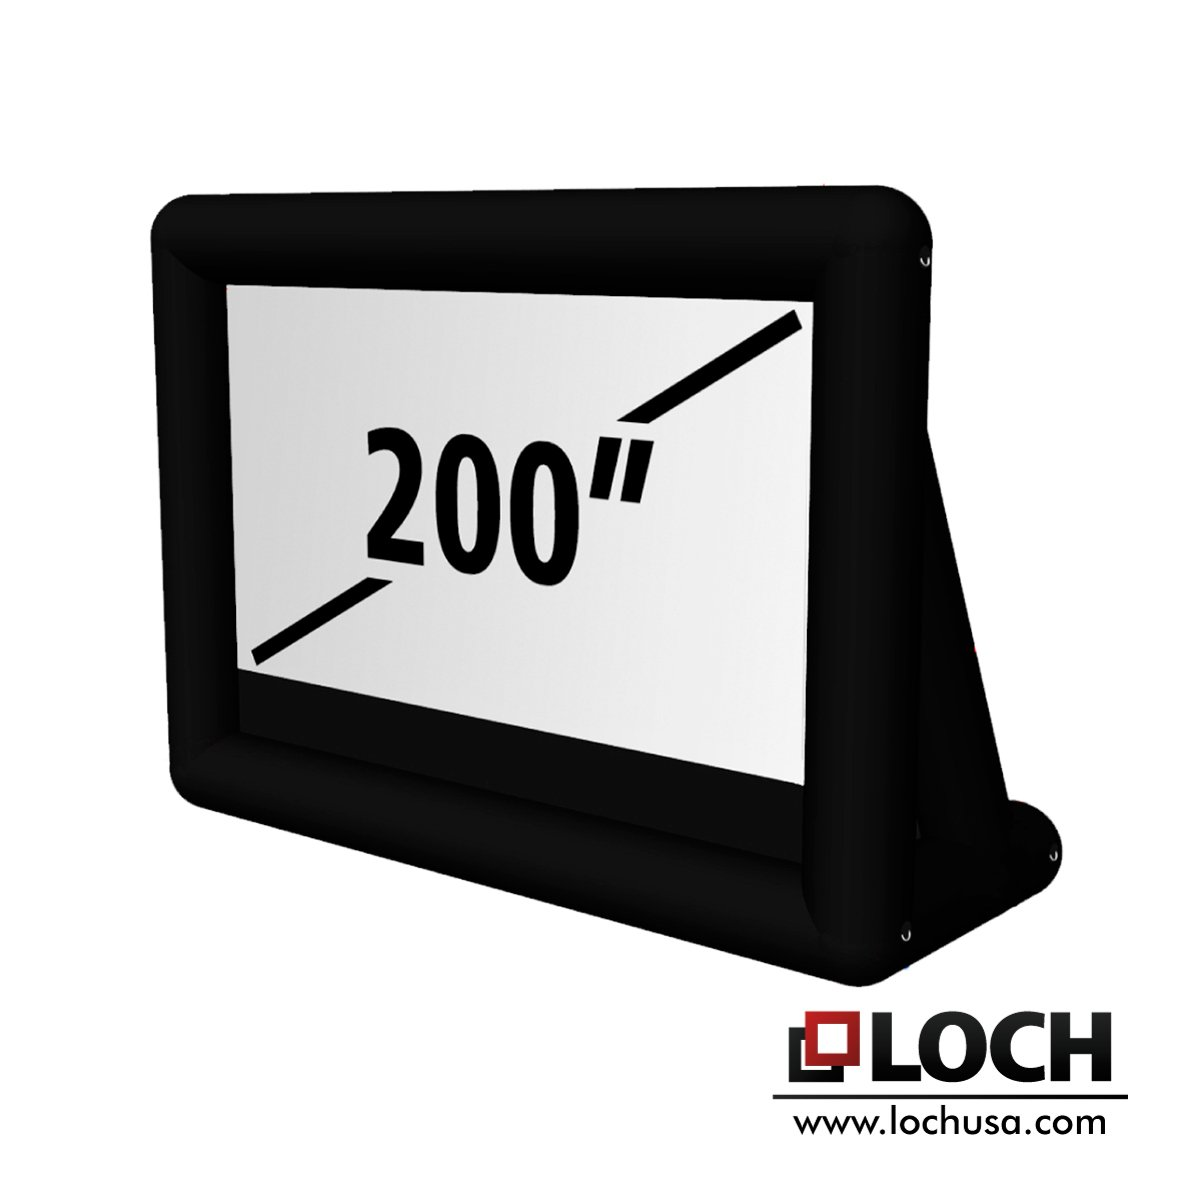 Loch IWS200 - 24 Foot Diagonal Total (View Area 200'' Diagonal Rear and Front 16:9) Inflatable Projection Screen - Outdoor Movies Cinema - Include Blower,Bag, Ropes, Stakes